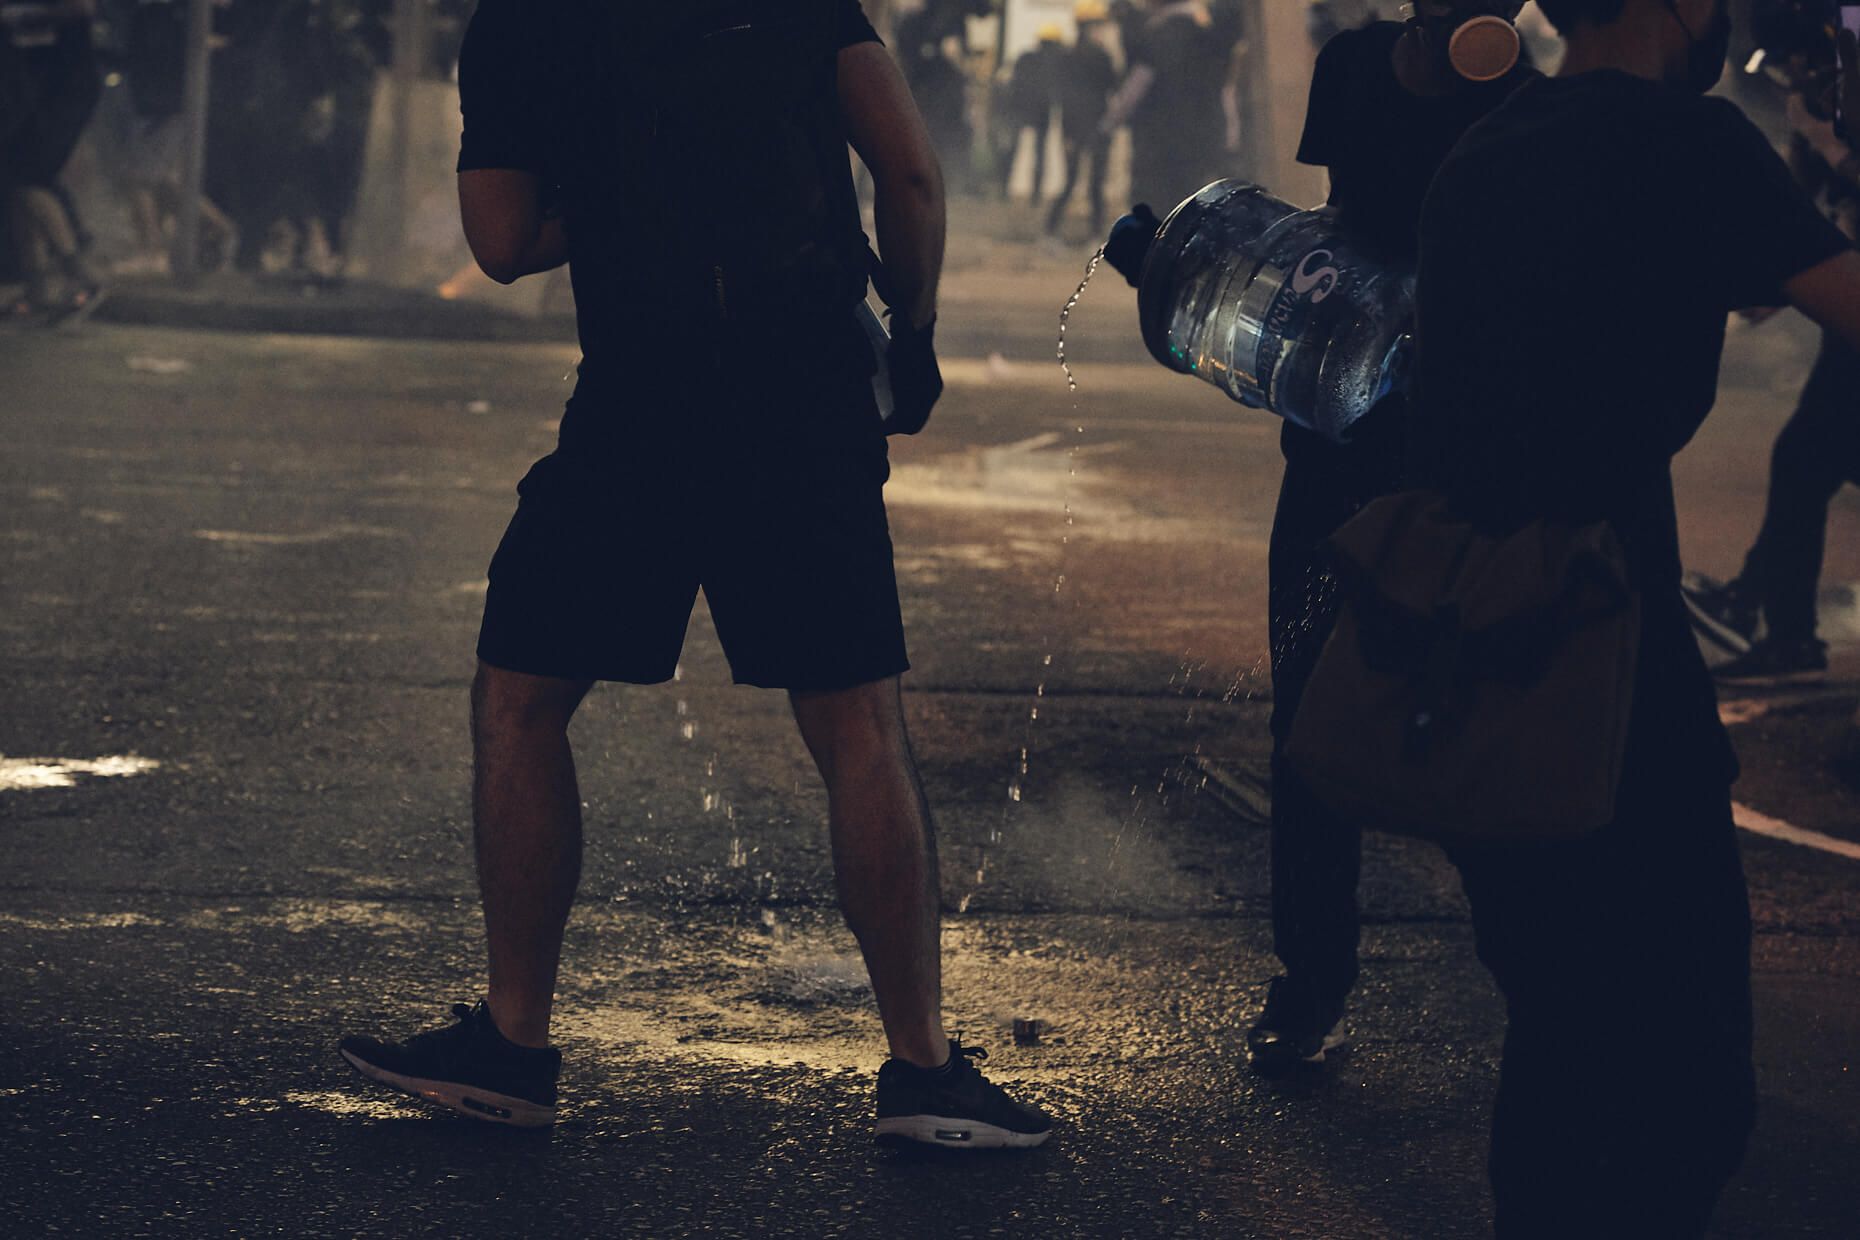 Hong_Kong_Protests_50